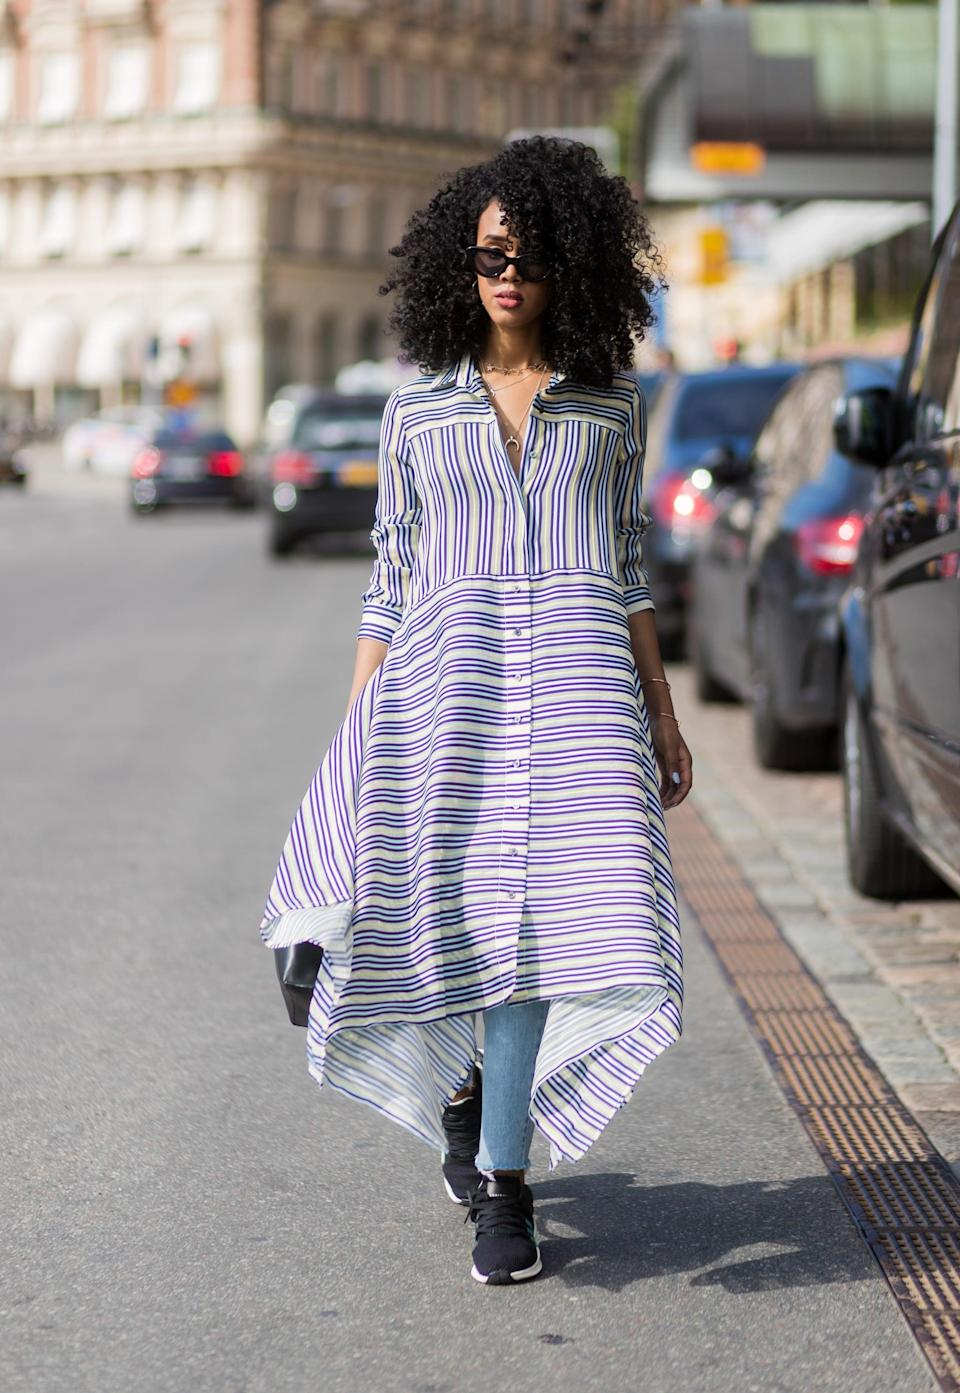 <p>Nothing tempers a tailored dress more than layering skinny jeans underneath with workout-inspired sneakers to finish.</p>